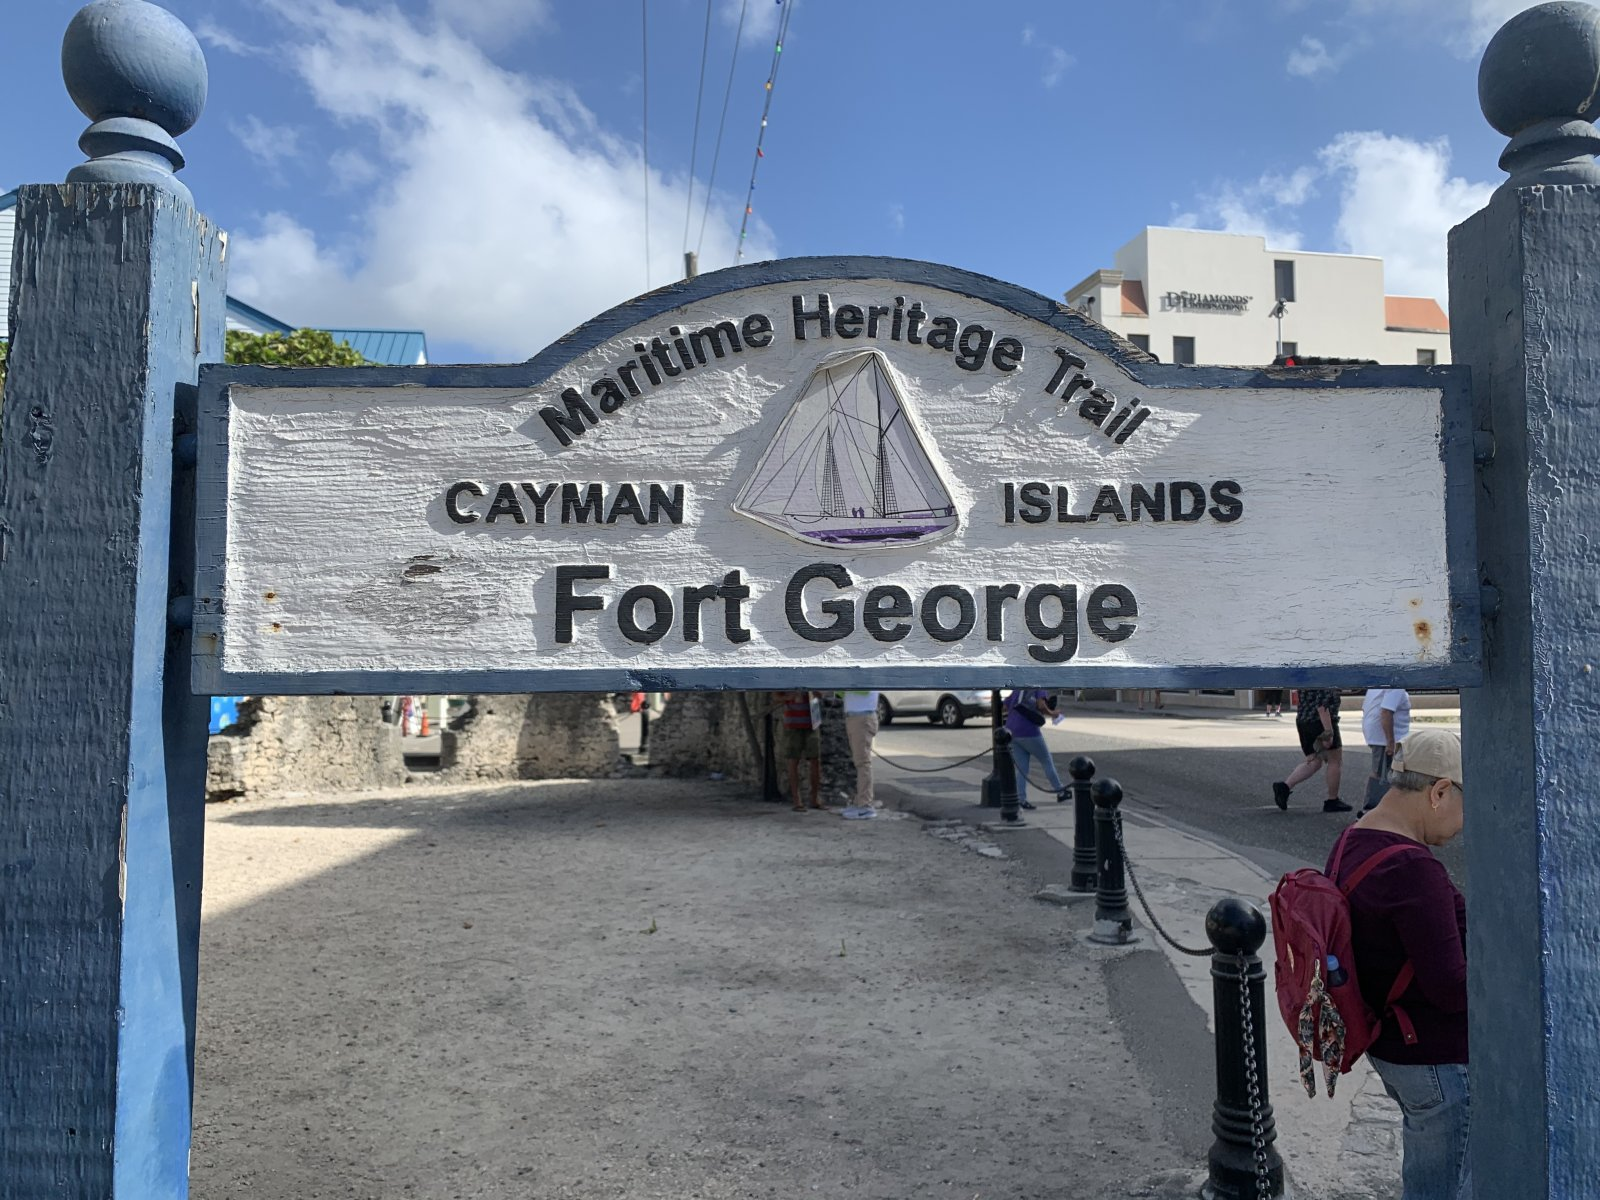 Fort George, Cayman Islands